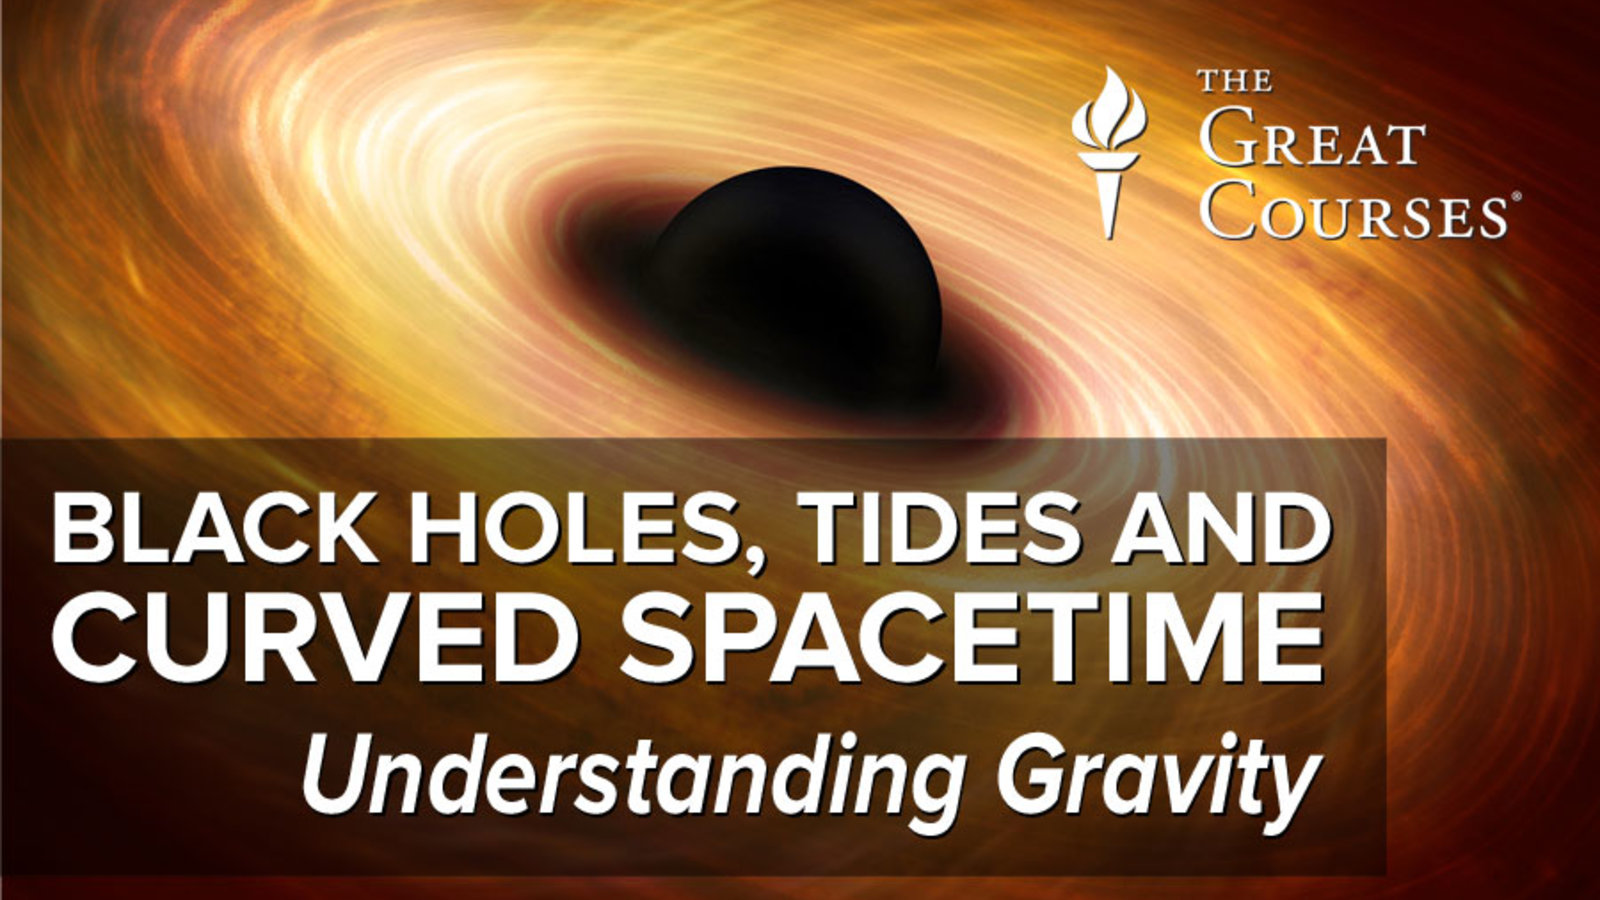 Black Holes, Tides, and Curved Spacetime - Understanding Gravity